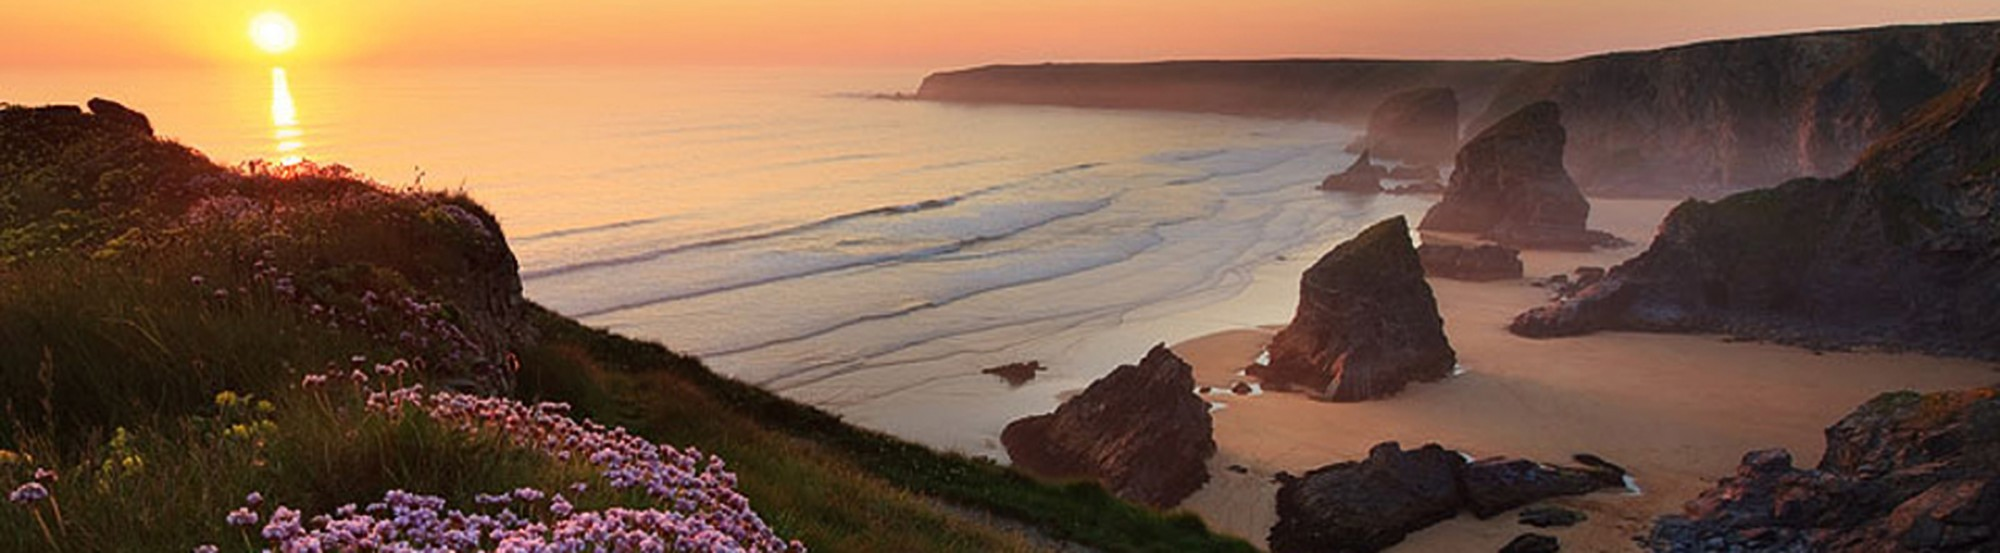 Bedruthan steps at sunrise